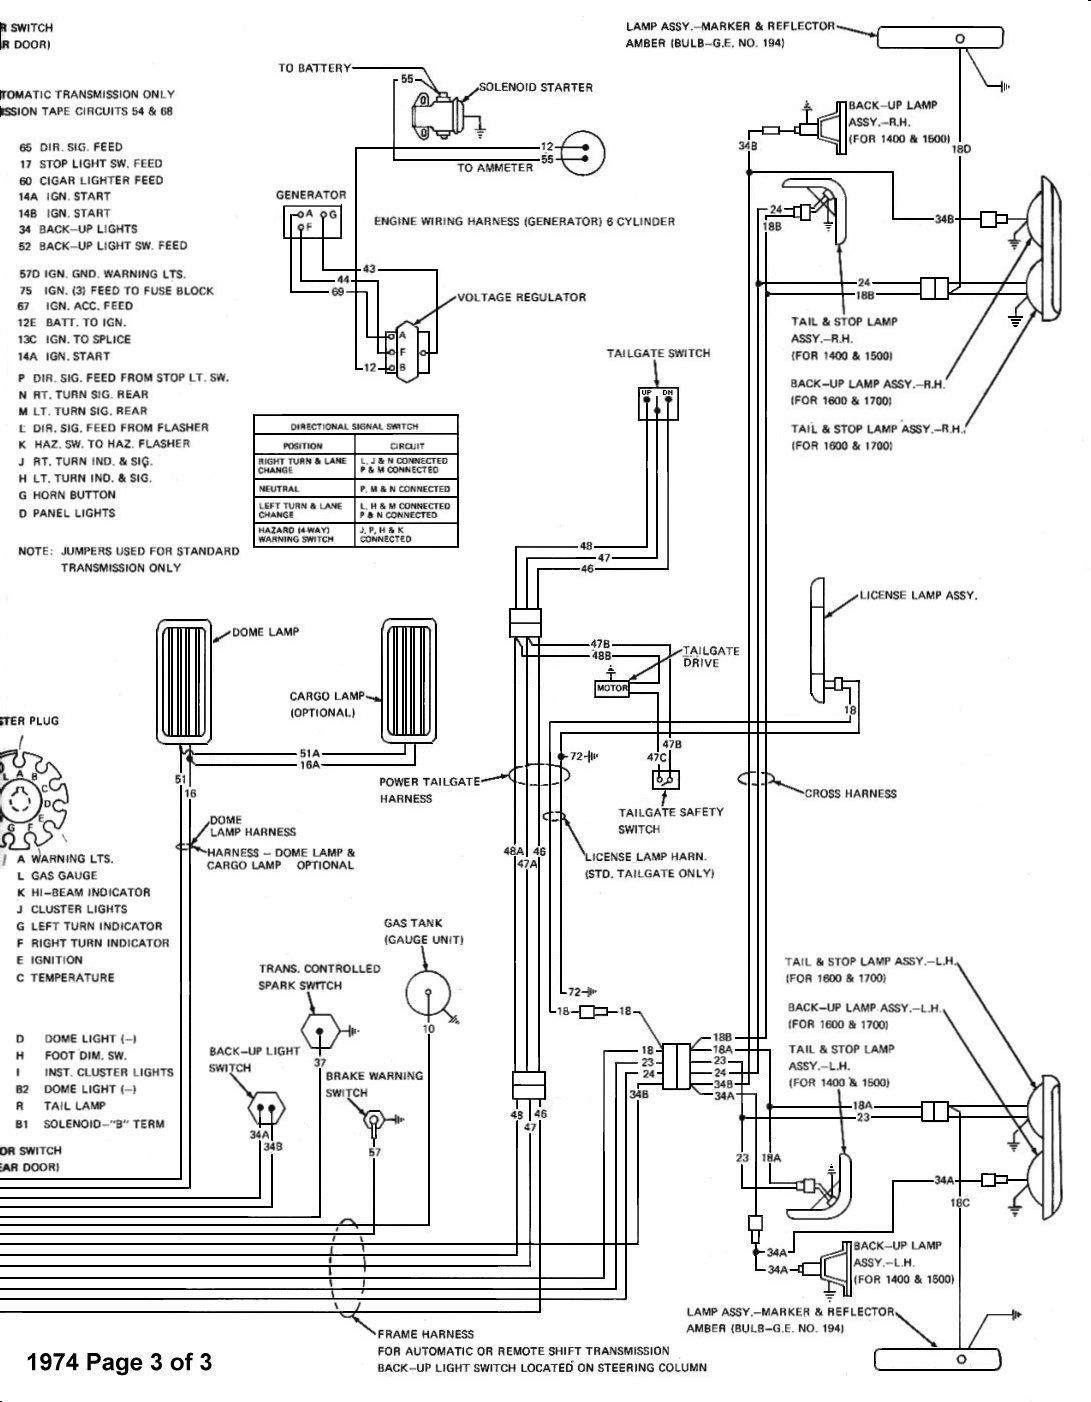 96 jeep cherokee wiring diagram blower motor fuse international 1996 jeep xj wiring diagram 1996 jeep cherokee wiring [ 1091 x 1402 Pixel ]